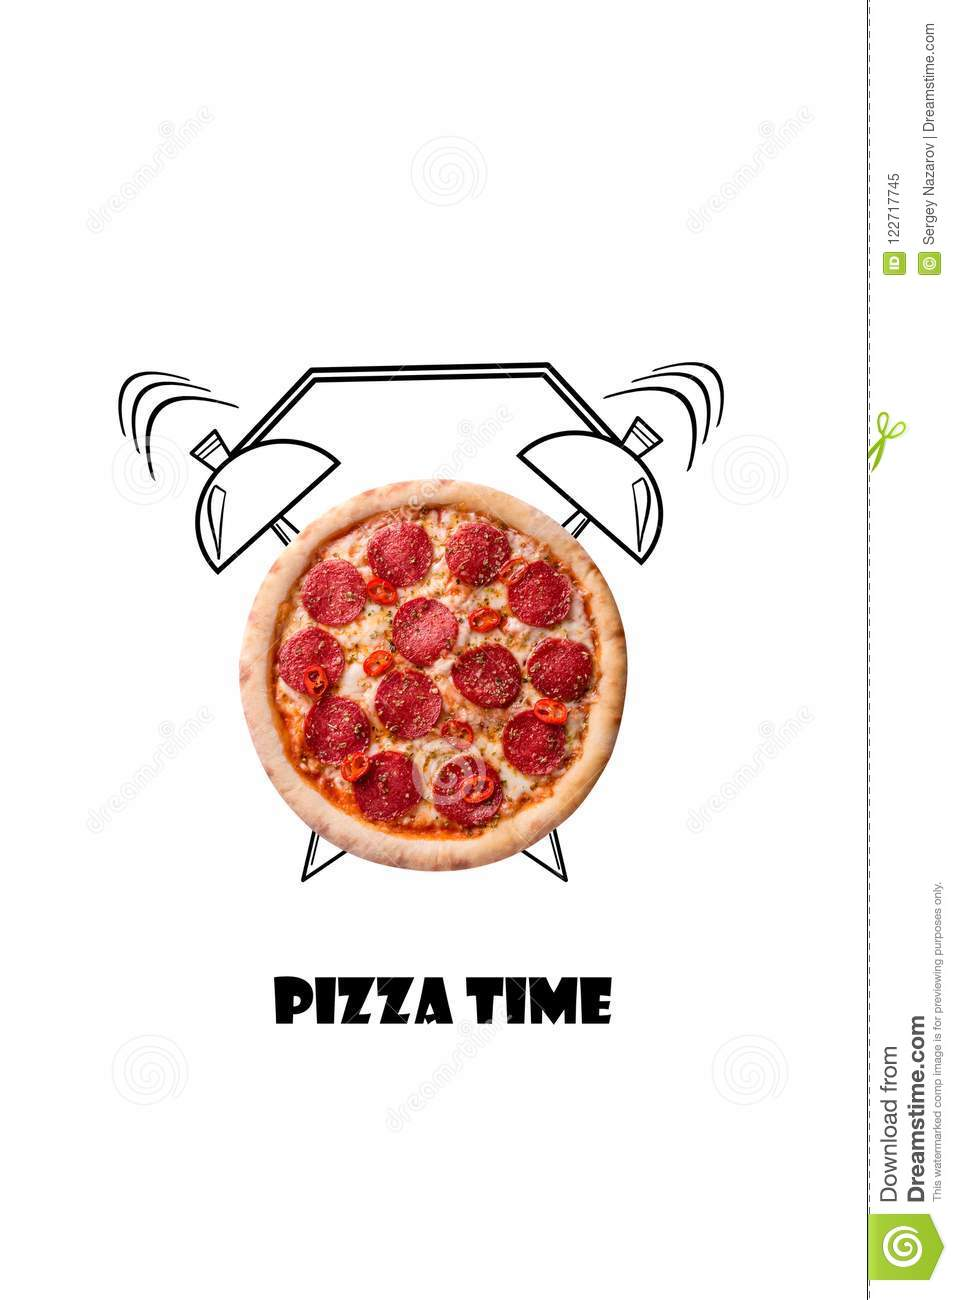 Pizza and alarm clock hand drawn illustration isolated on white background. The inscription Pizza time.